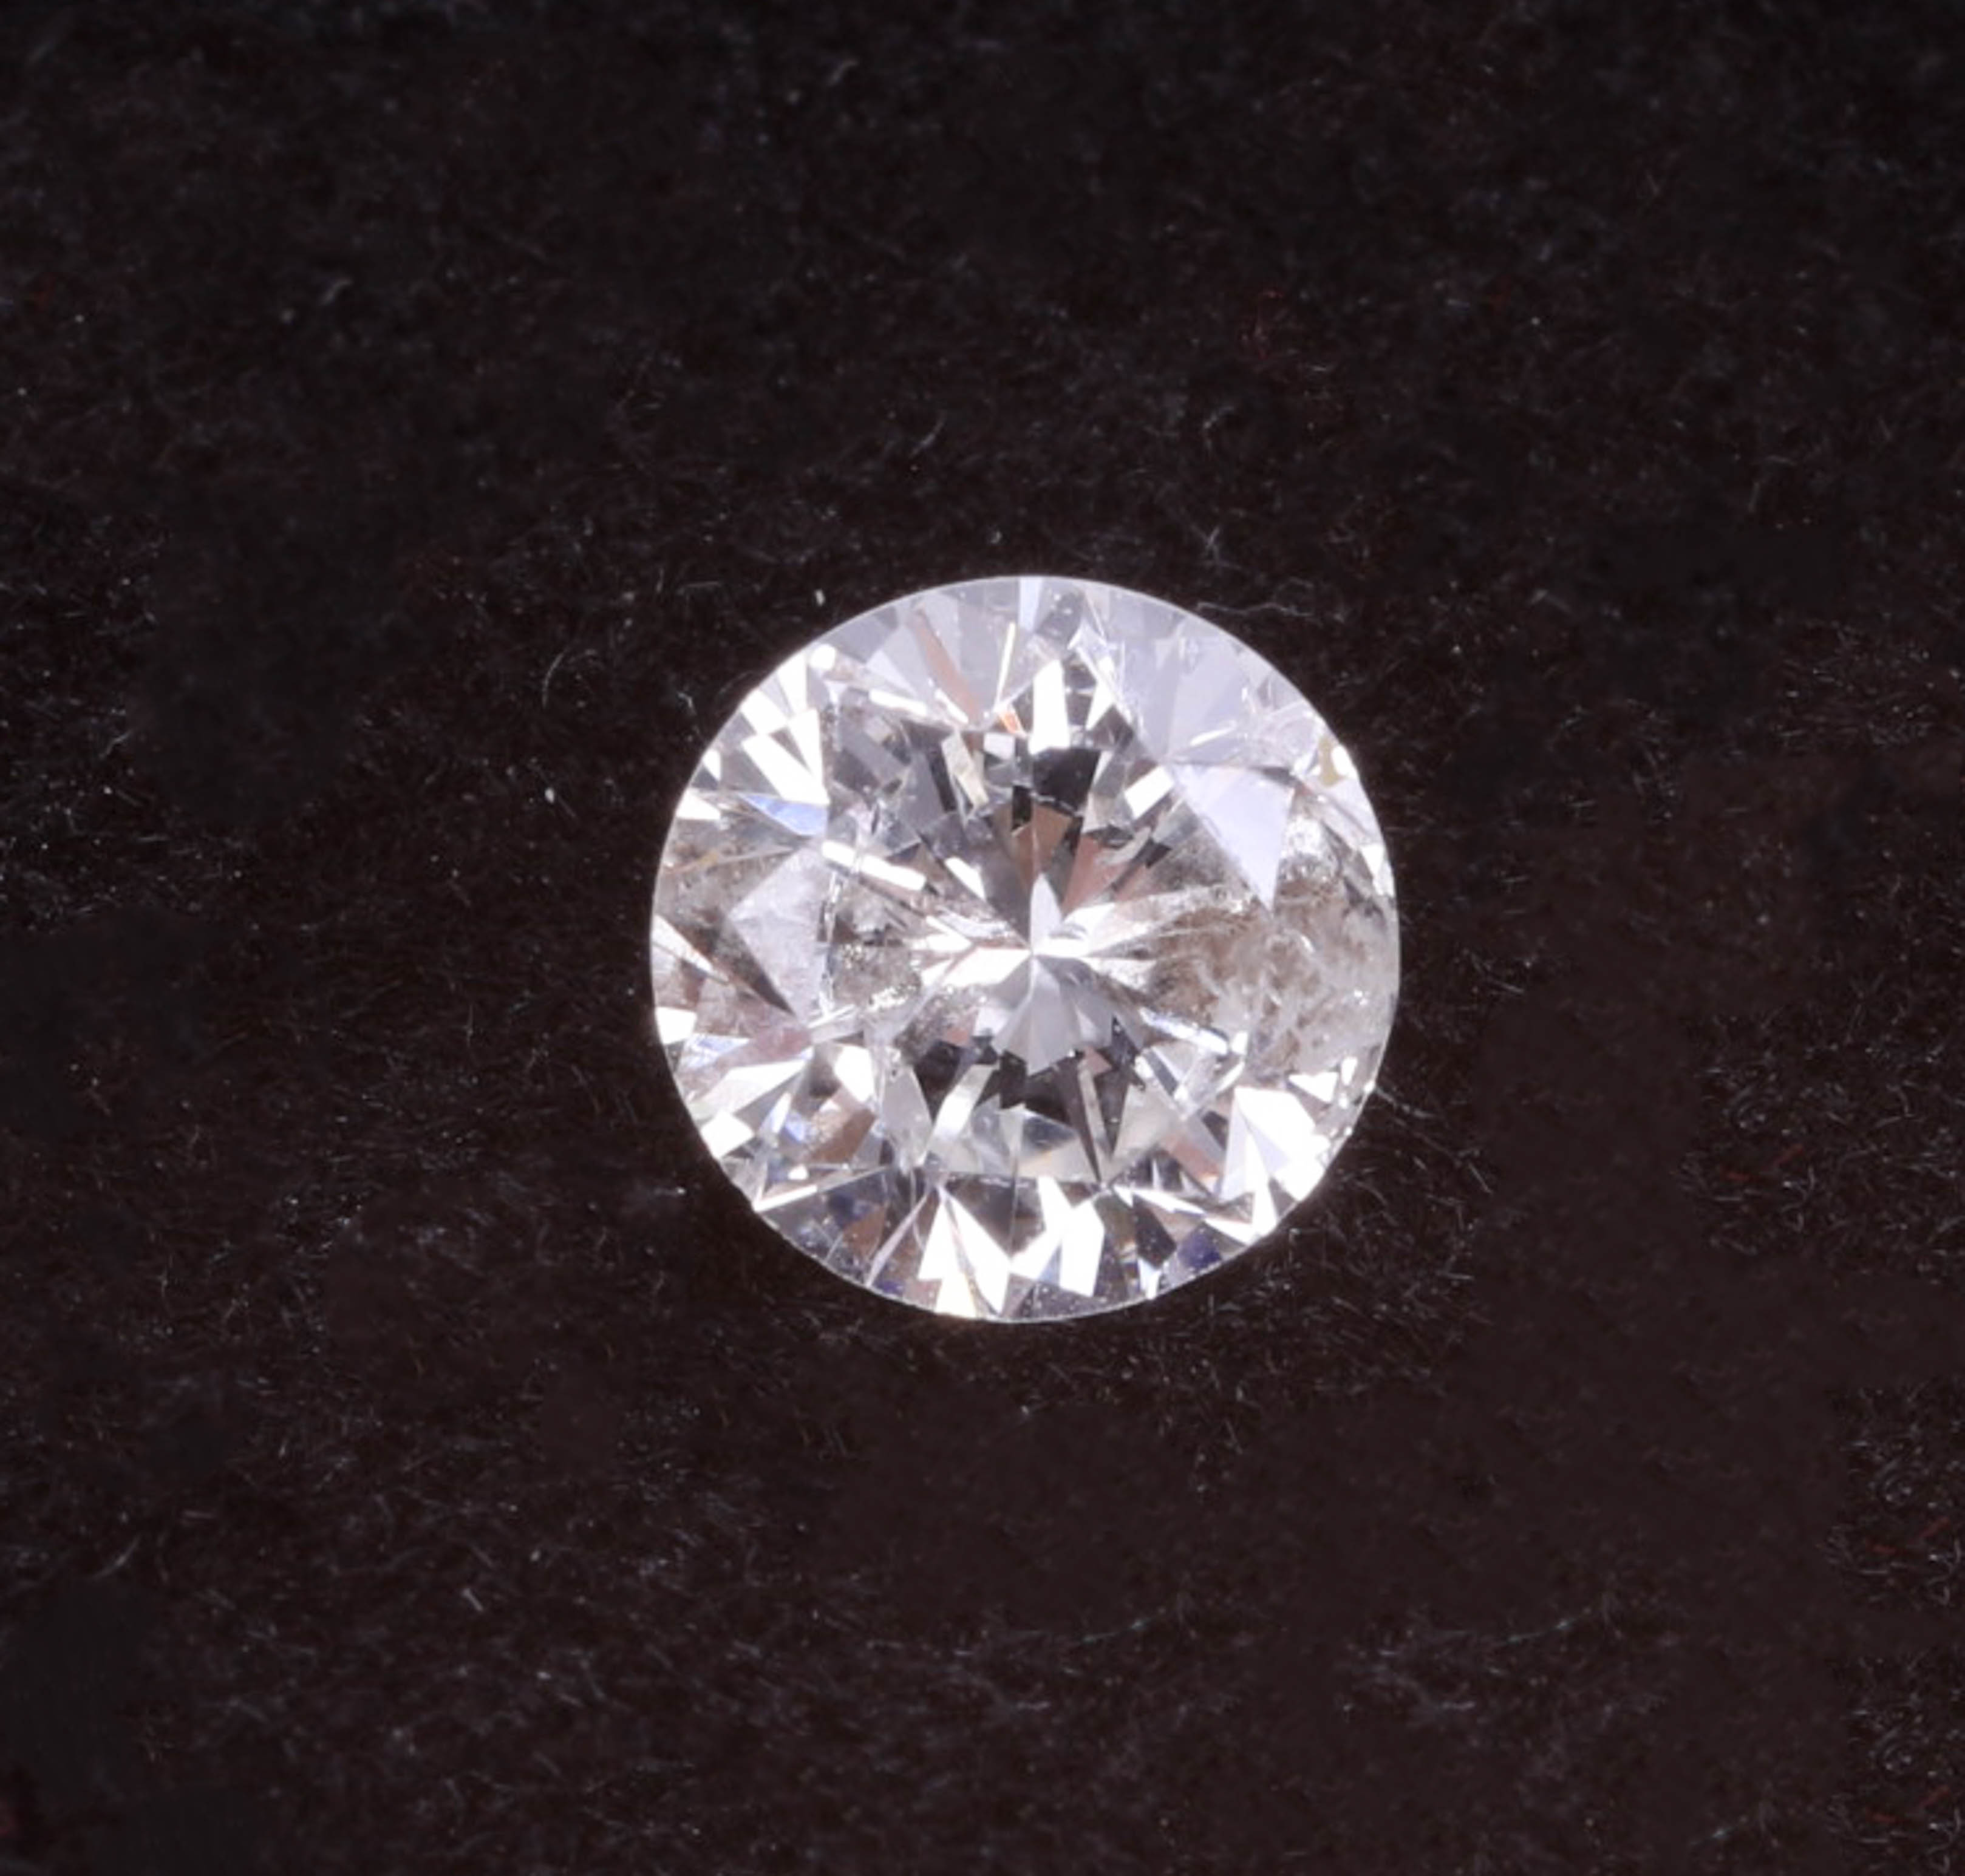 Lot 033 - A loose single round cut diamond stone, approximately 0.37ct.